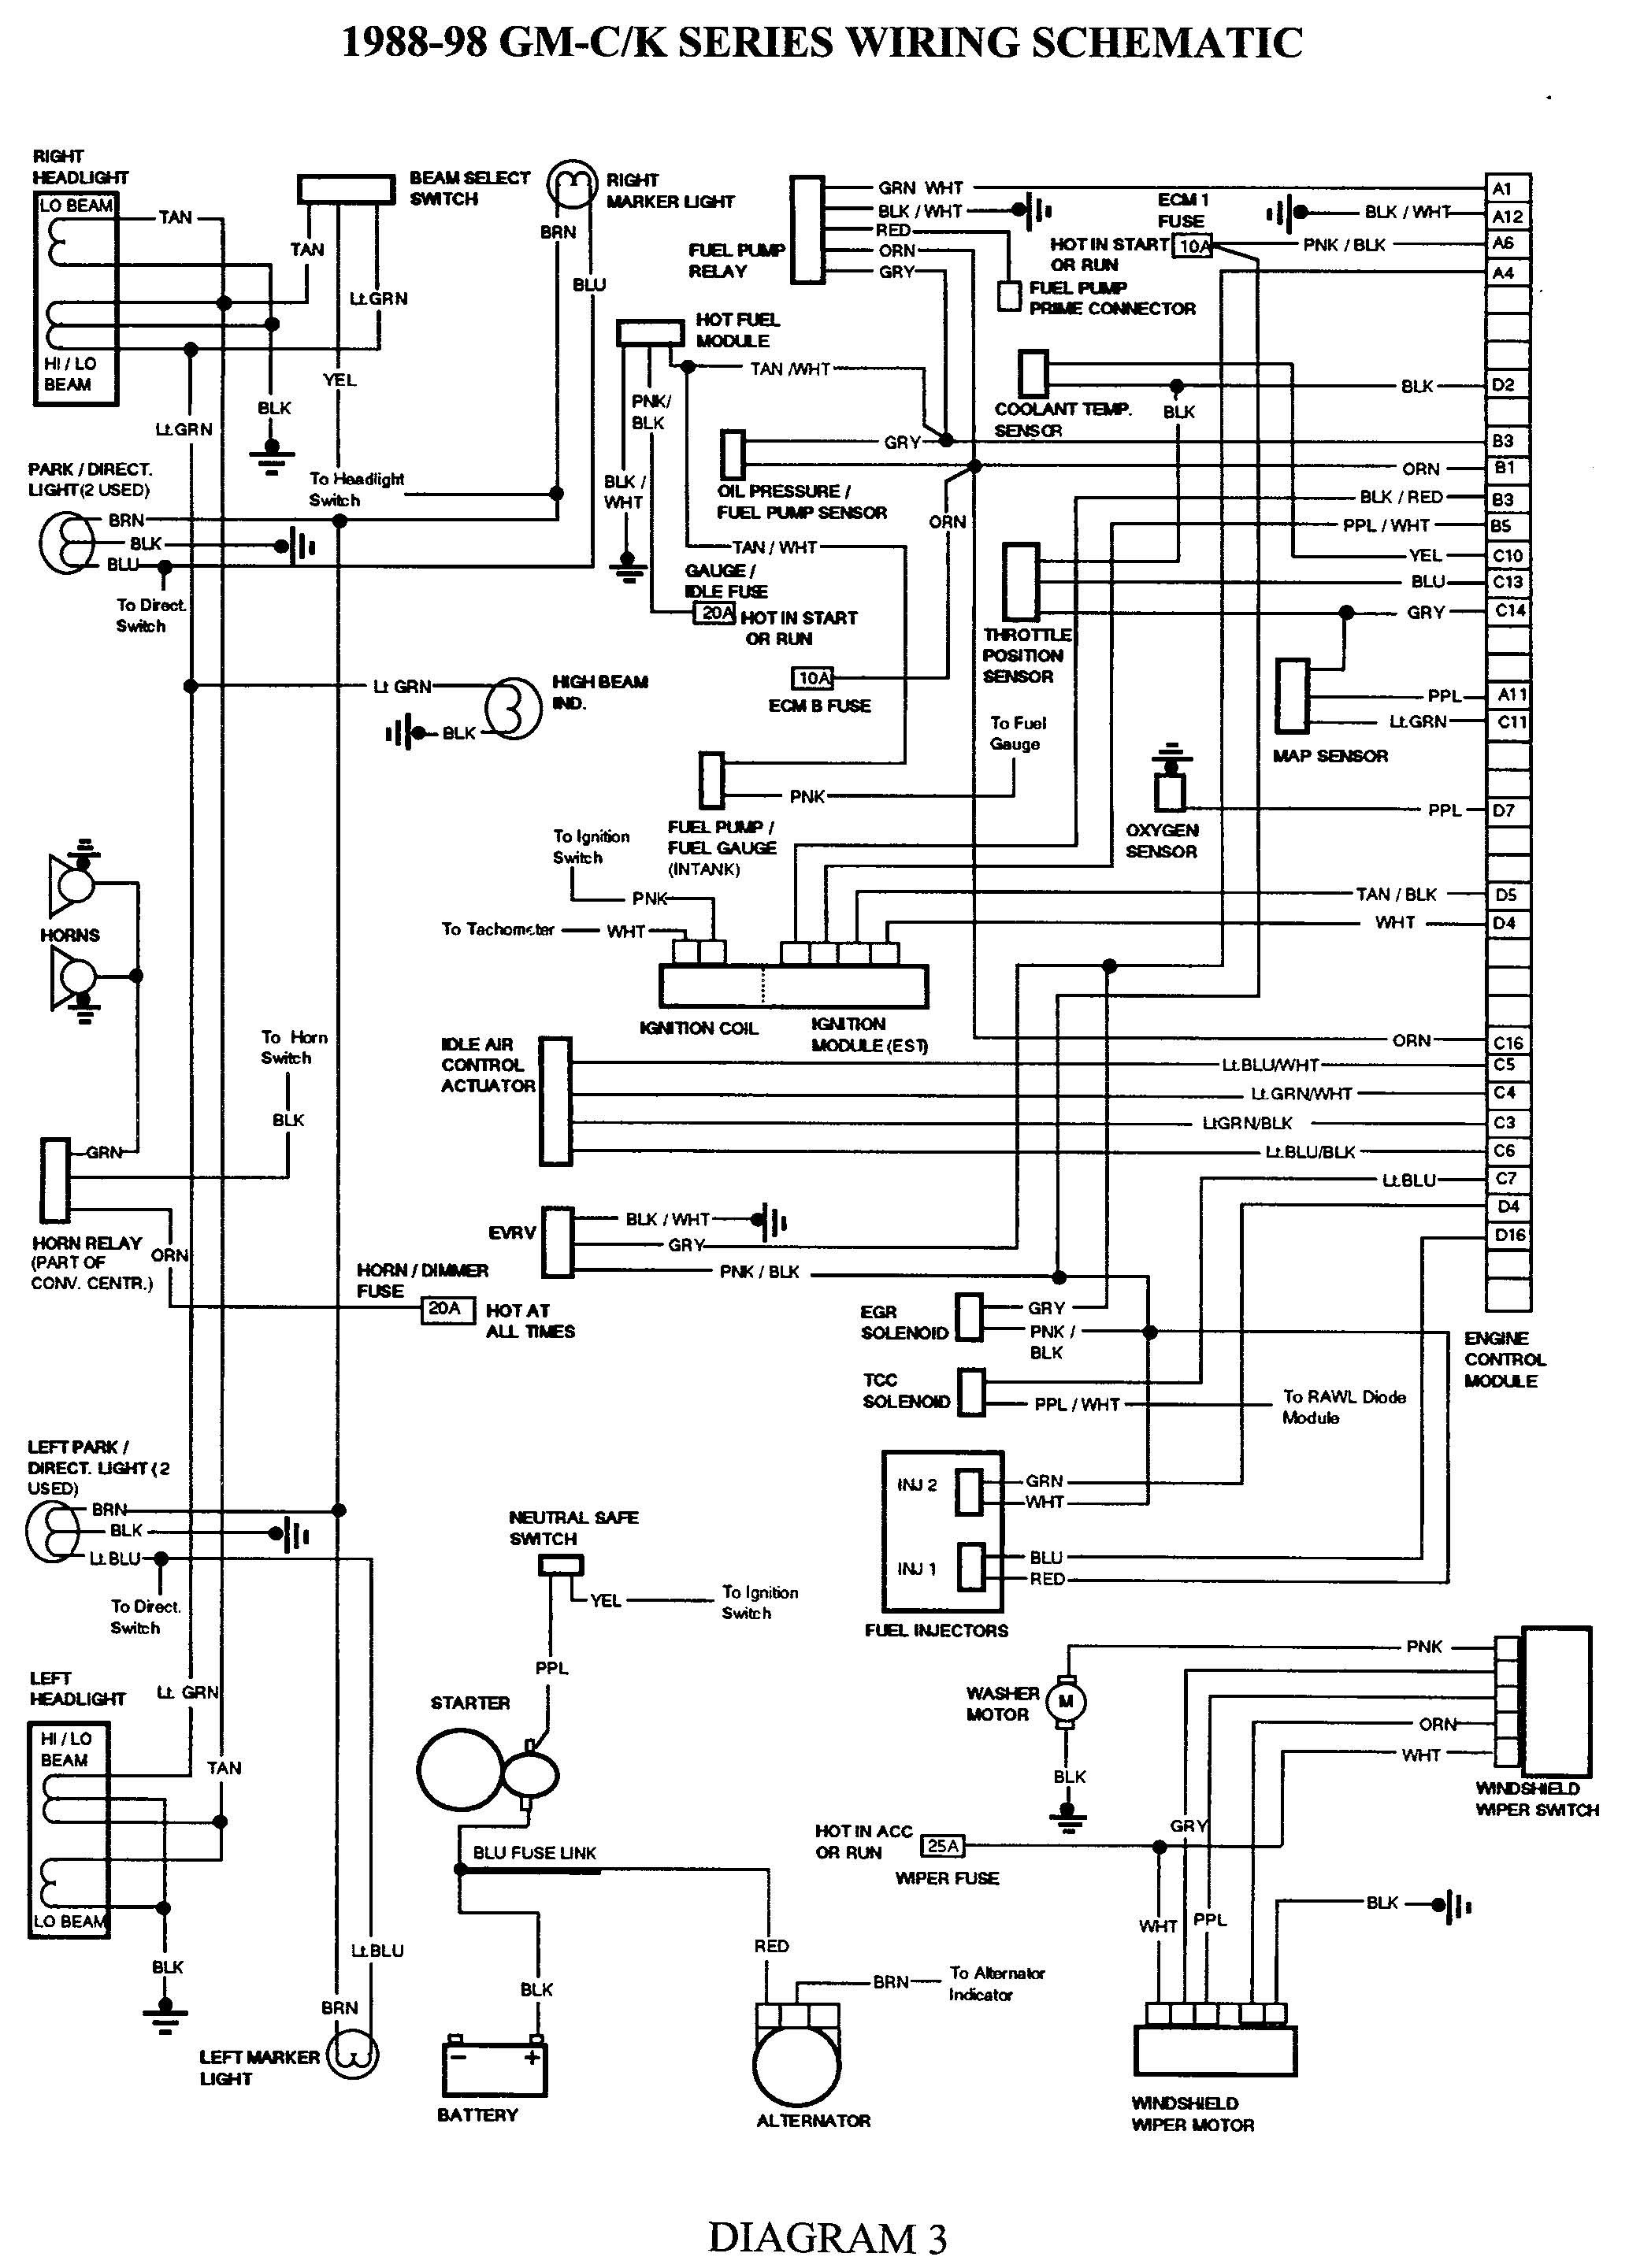 2006 Dodge Grand Caravan Engine Diagram 98 Gmc Sierra Headlight Wiring  Diagram Circuit Diagrams Image Of